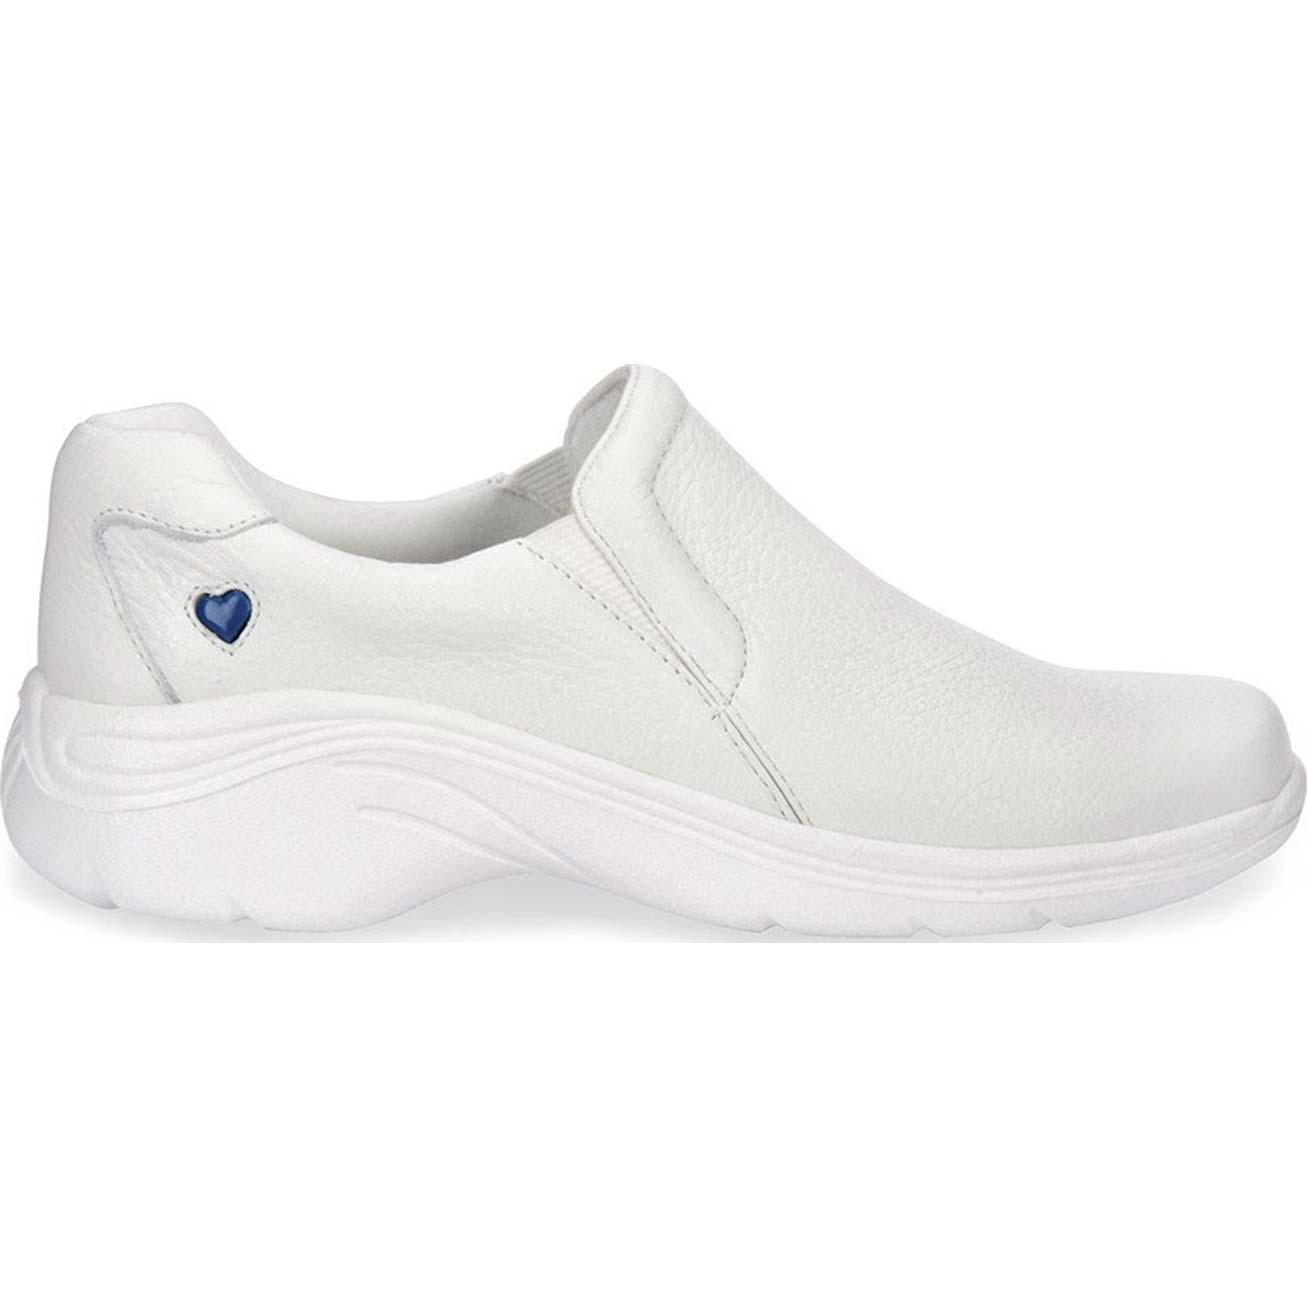 Nurse Mates Dove White Shoe   Wide